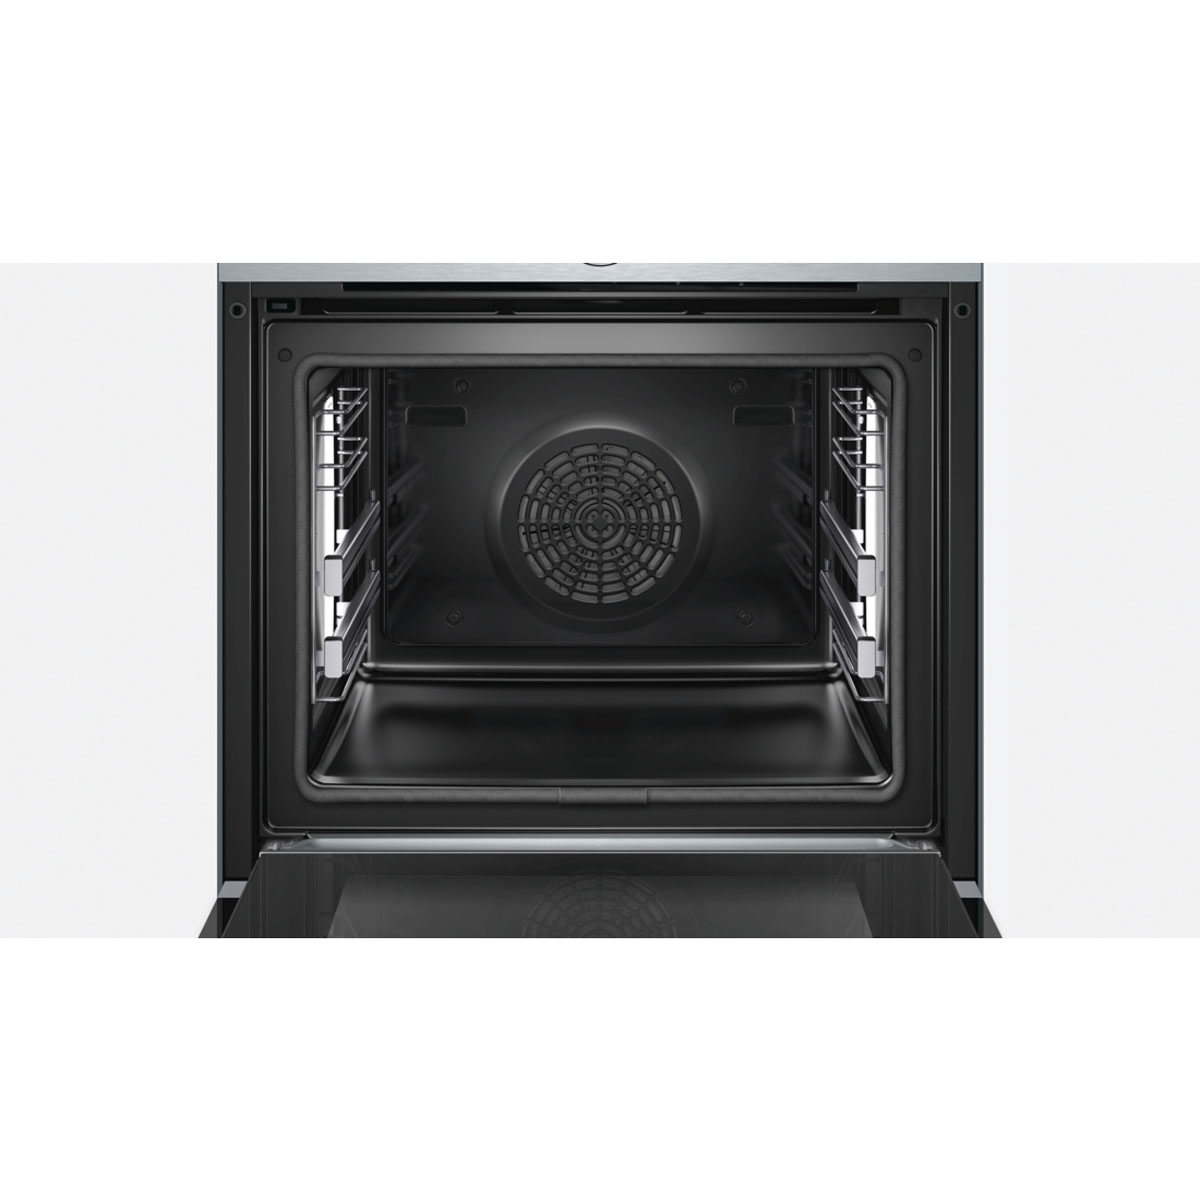 bosch hrg6767s2a serie 8 pyrolytic electric wall oven with steam up to 60 off. Black Bedroom Furniture Sets. Home Design Ideas